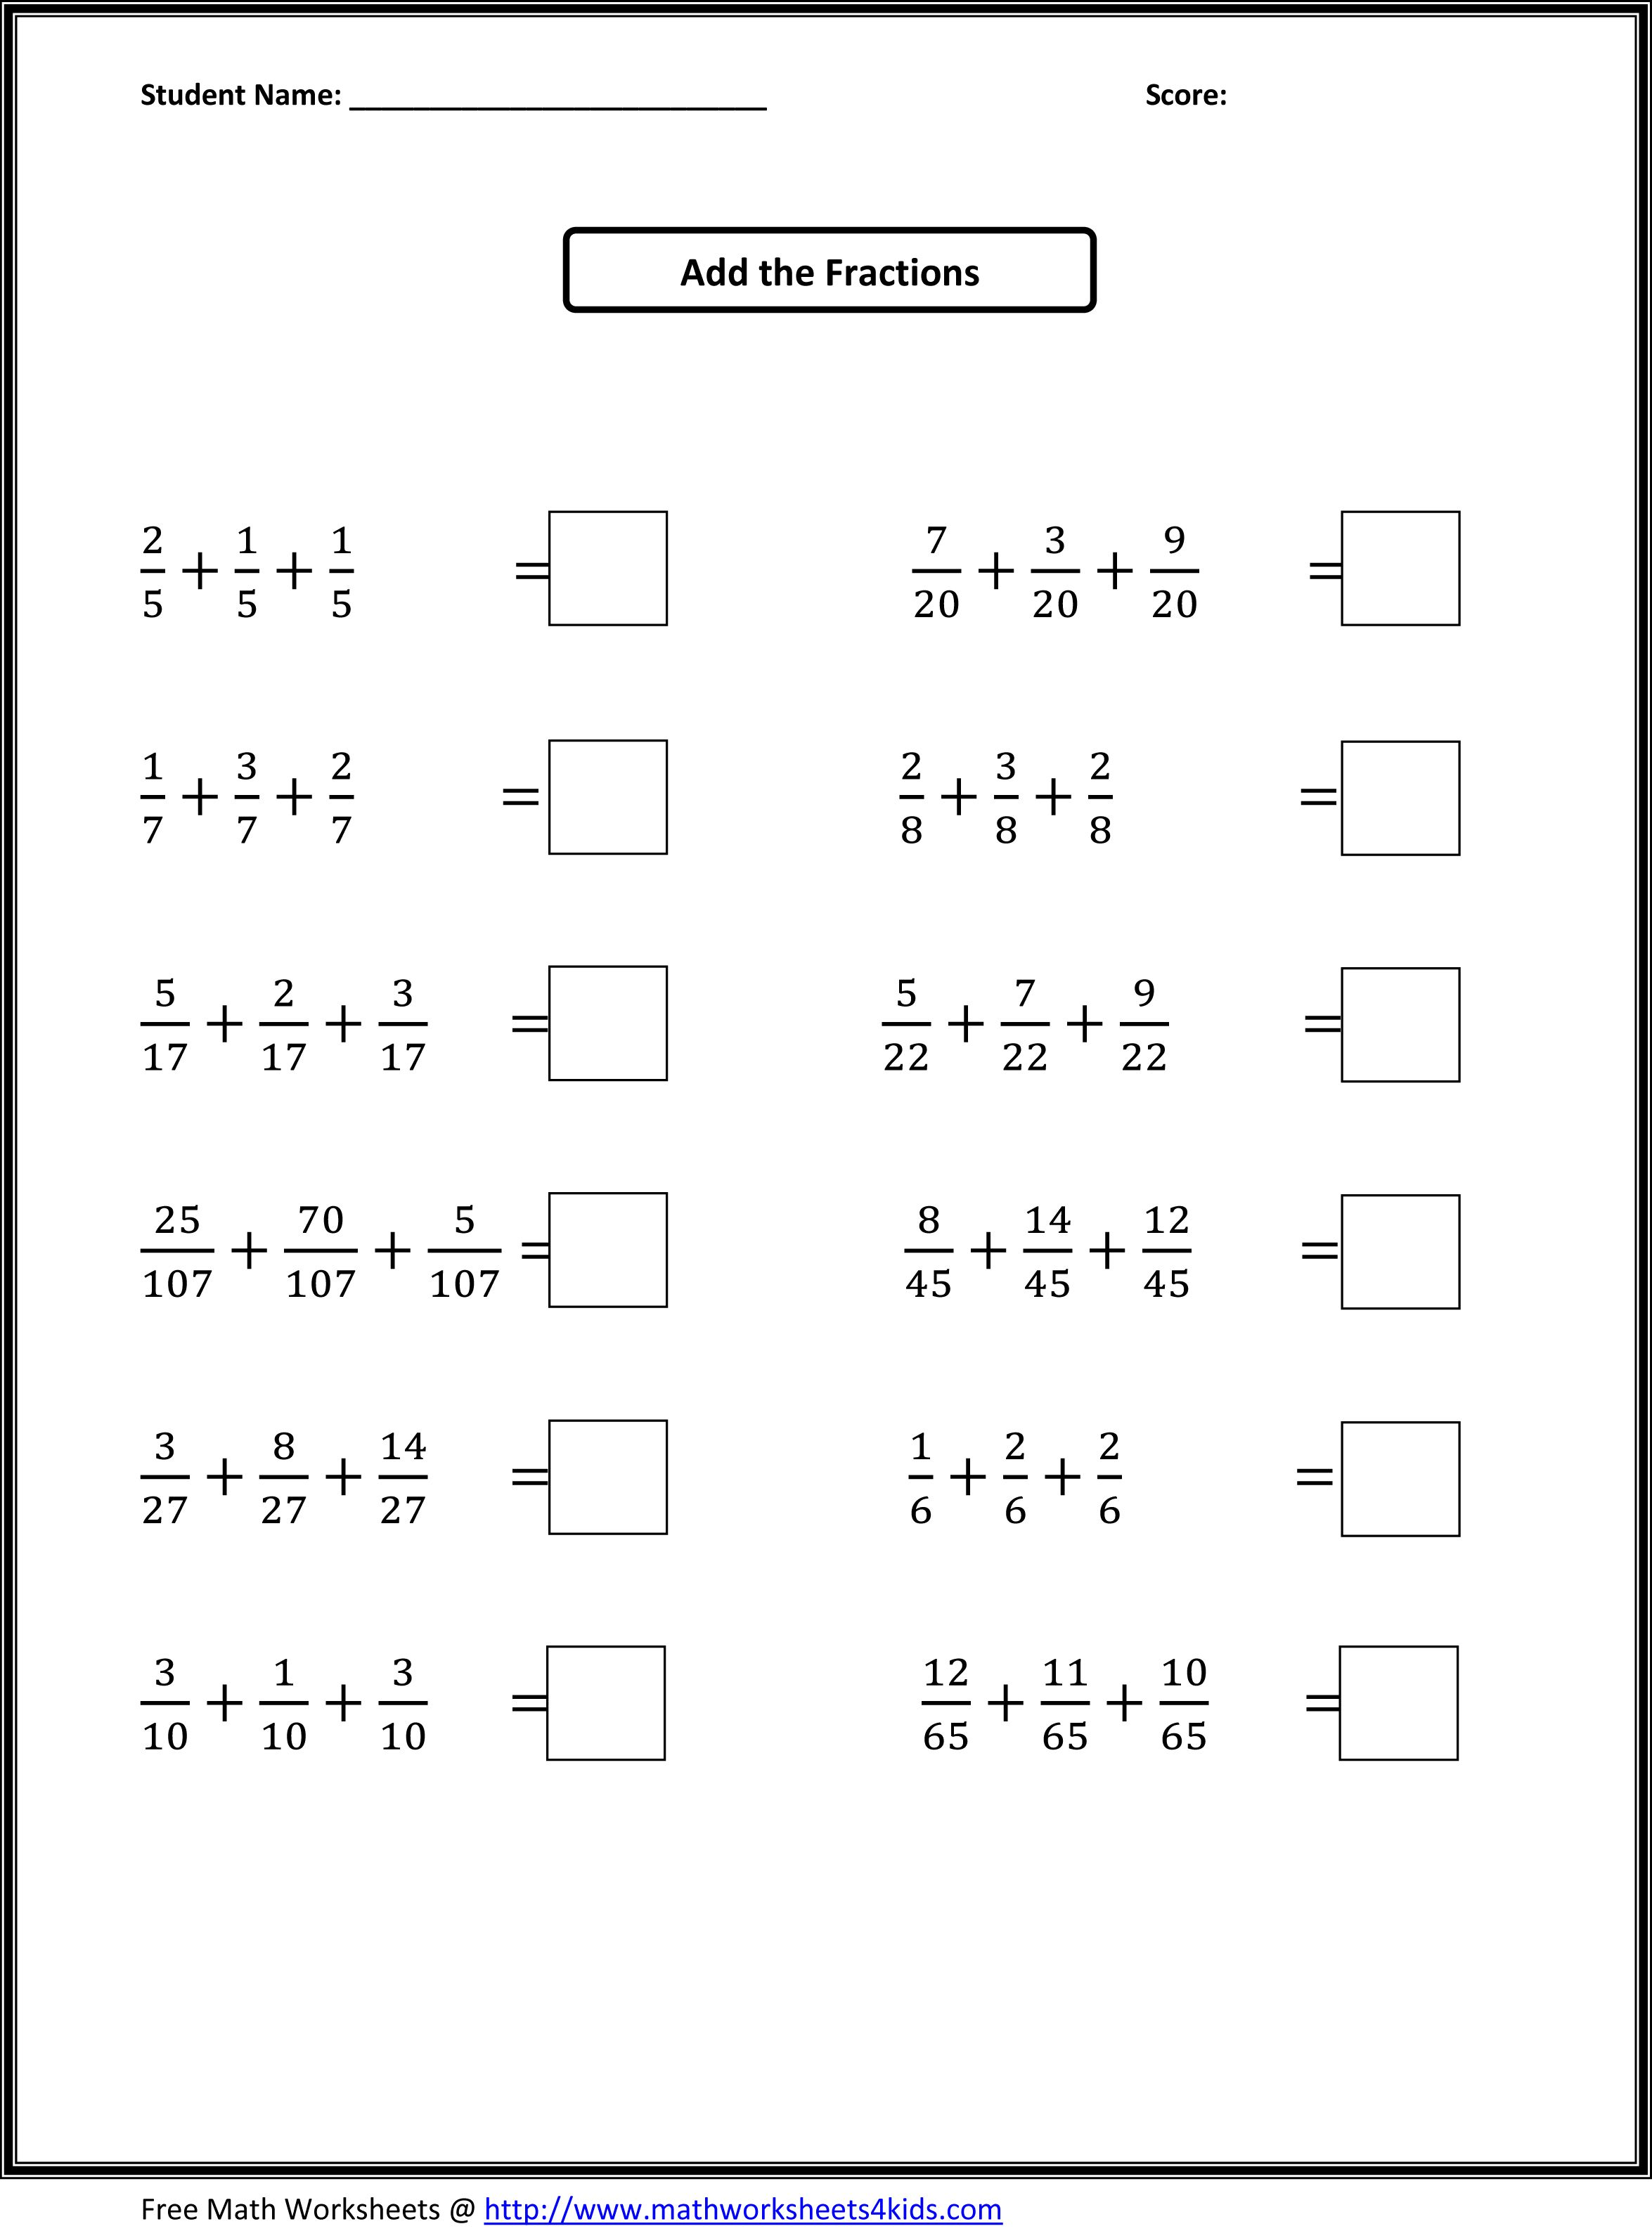 Printables Math For 4th Graders Worksheets 1000 images about math worksheets on pinterest 4th grade geometry and fourth math